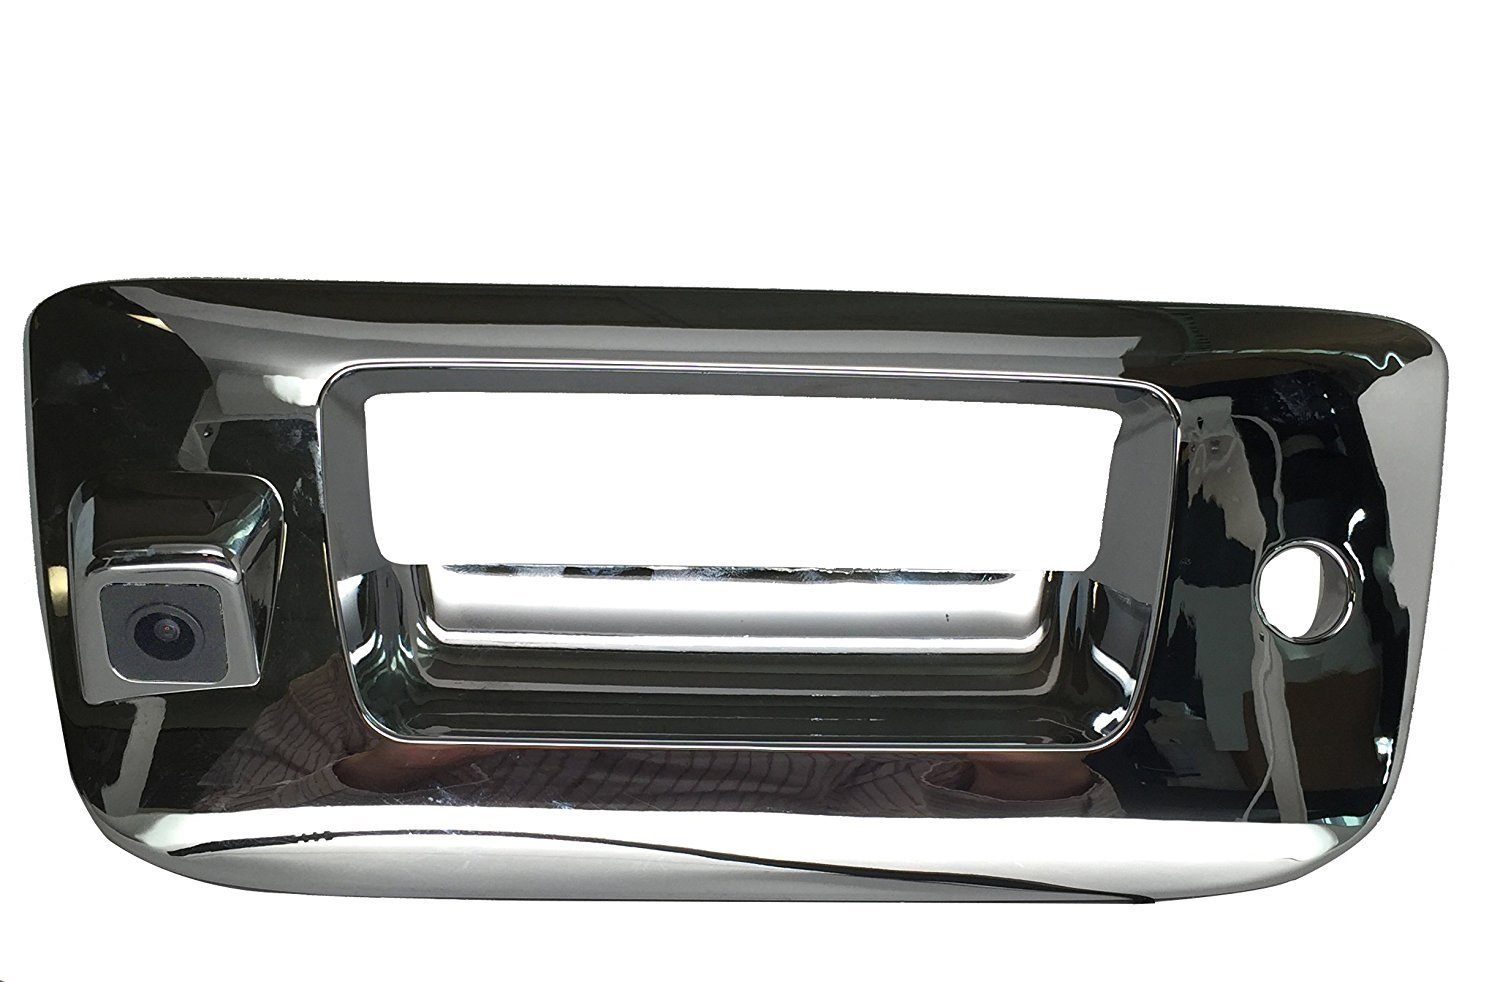 PYvideo Backup Camera for (2007-2013) Chevy Silverado / GMC Sierra for Universal Monitors (RCA) (Color: Chrome) by PYvideo (Image #1)